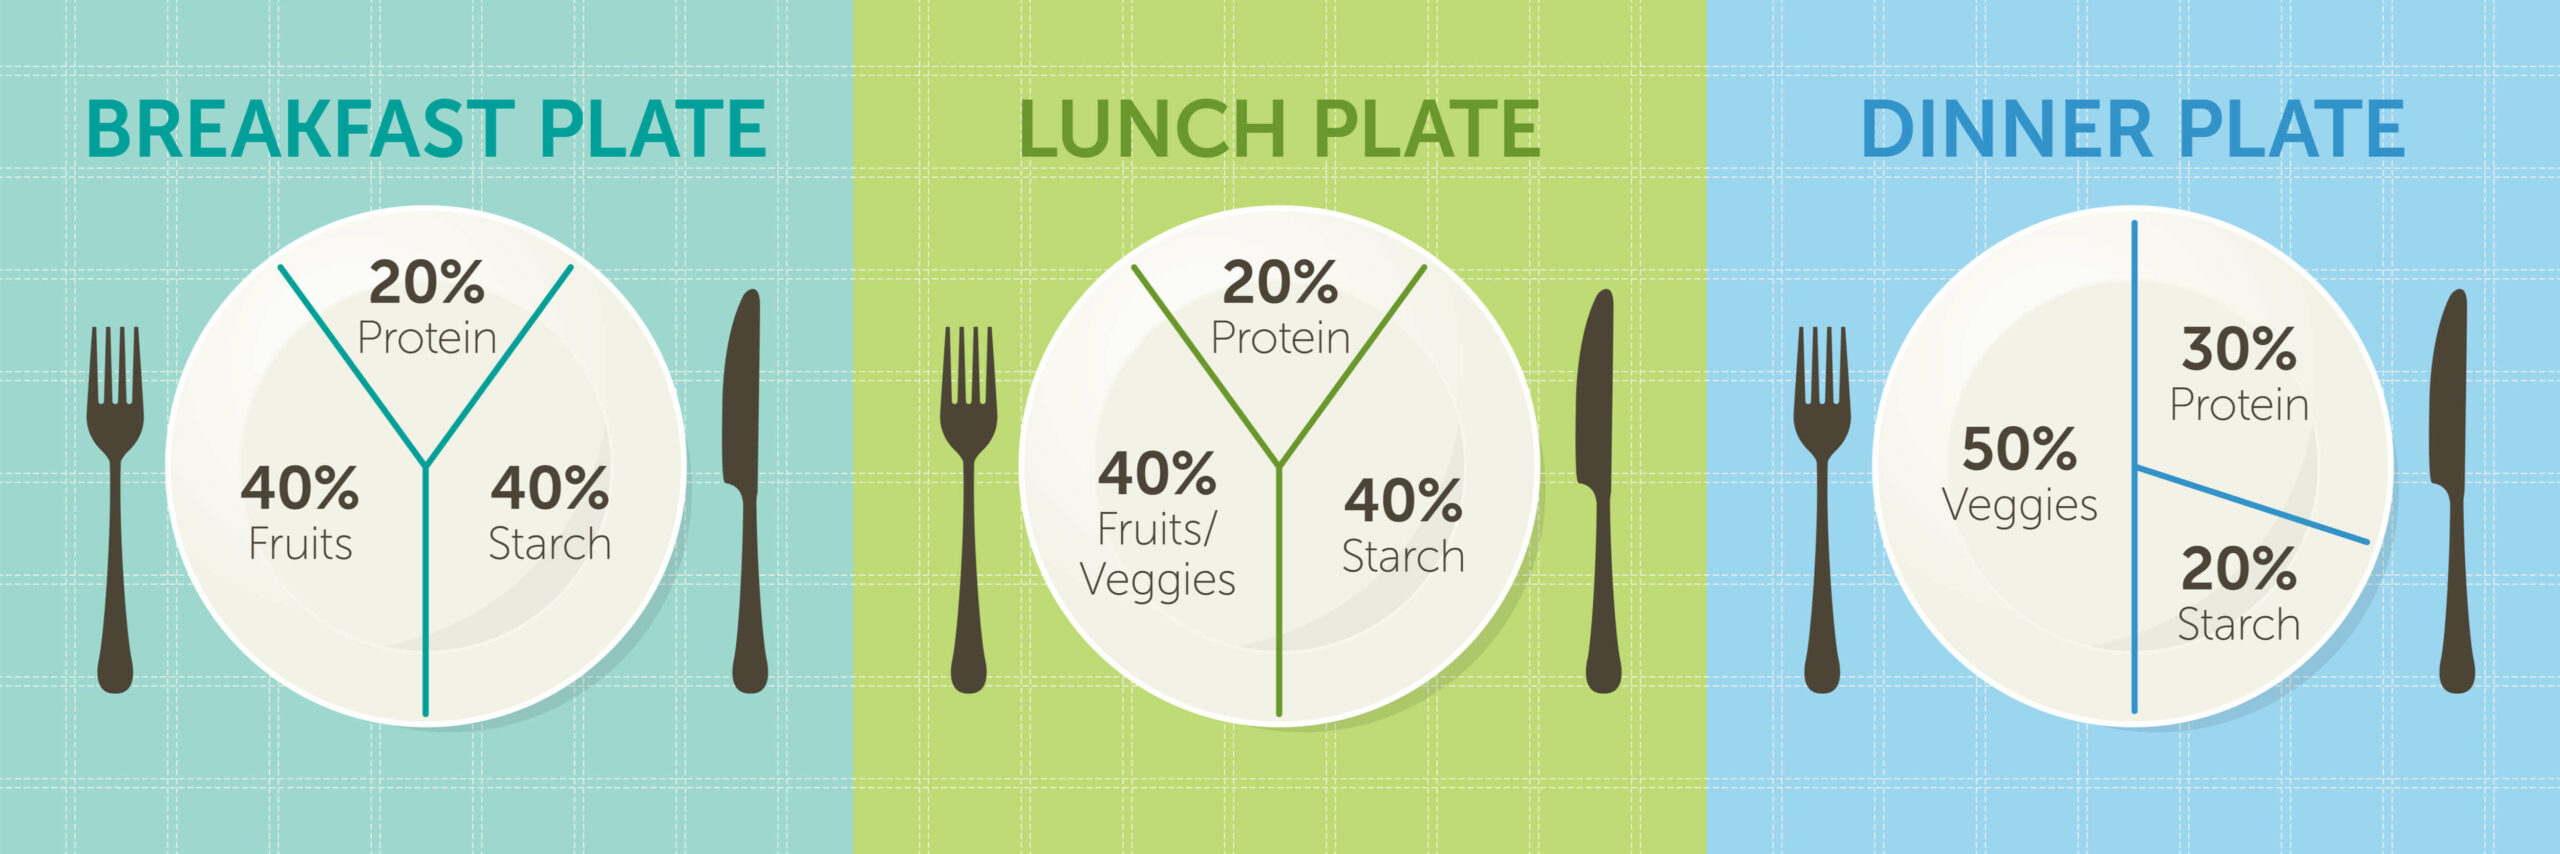 Eating habits - portion control